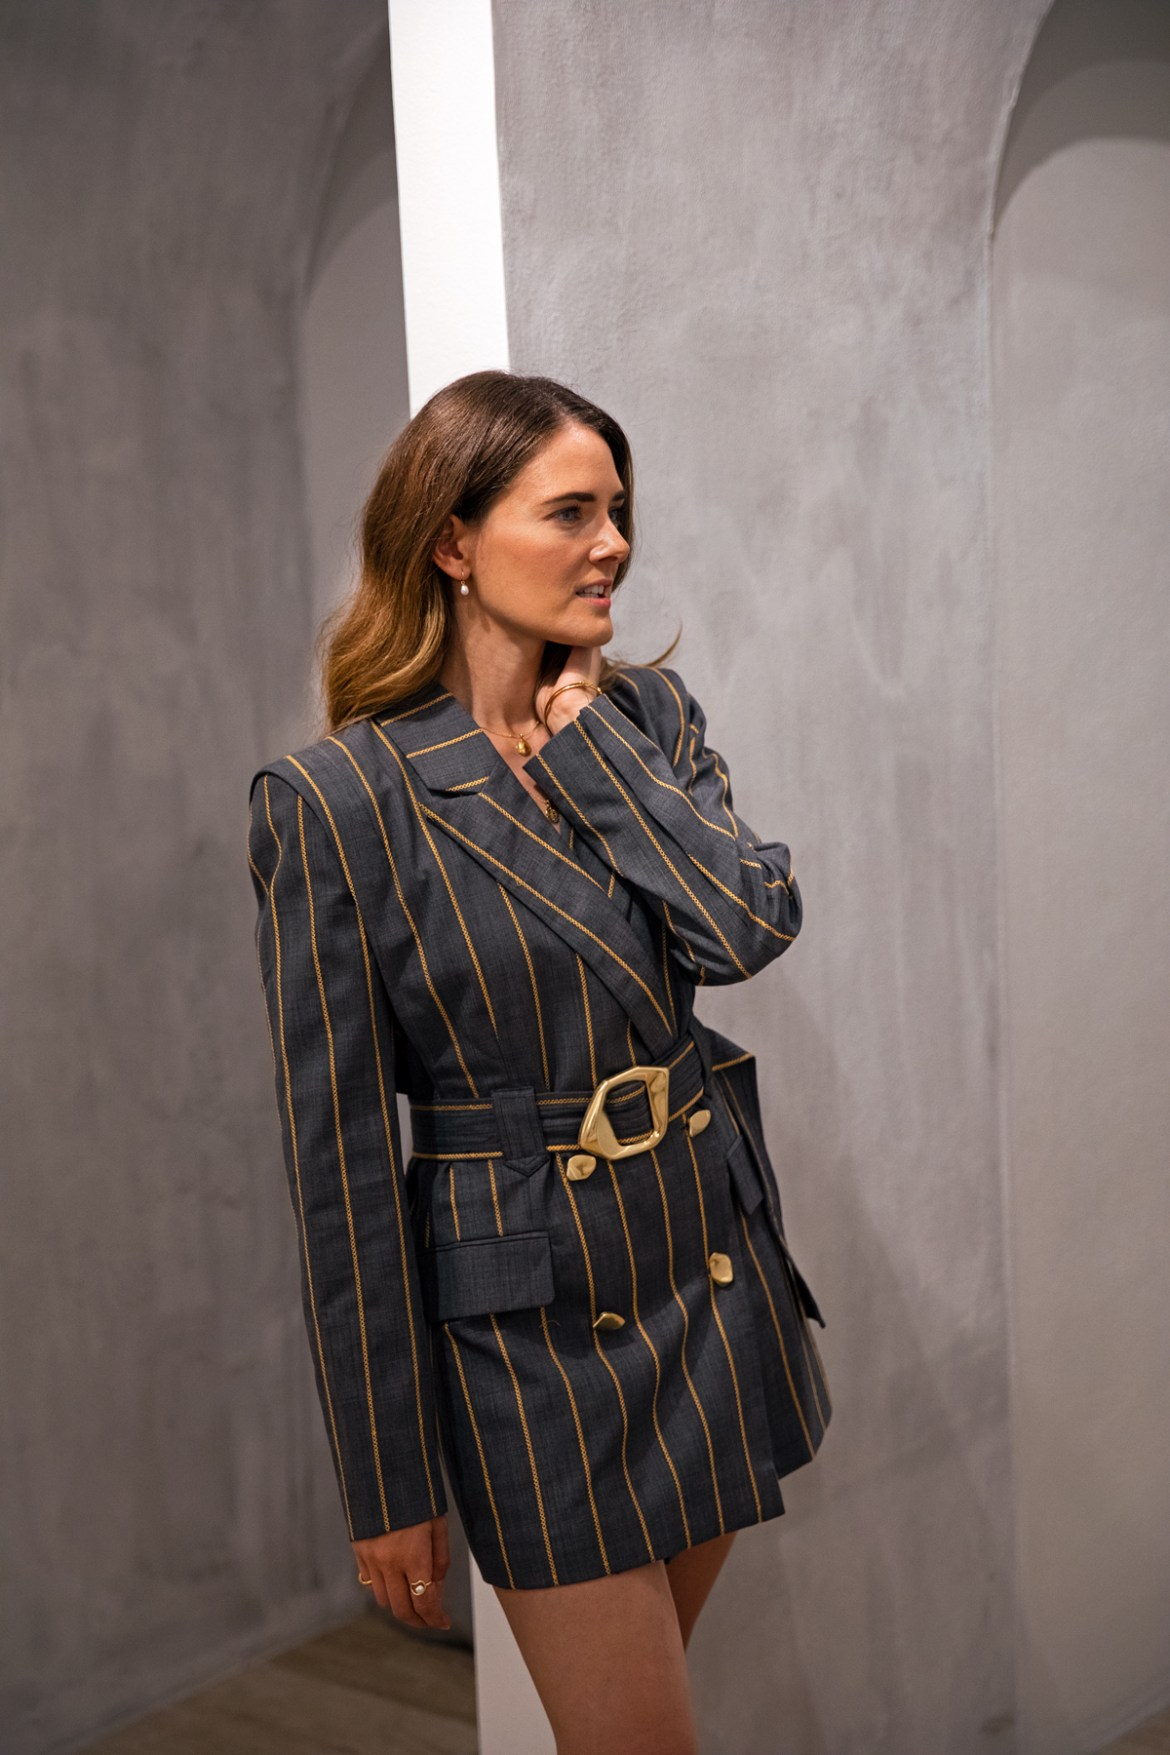 Aje Blazer dress from Autumn 19 collection worn by Inspiring Wit fashion blogger Jenelle